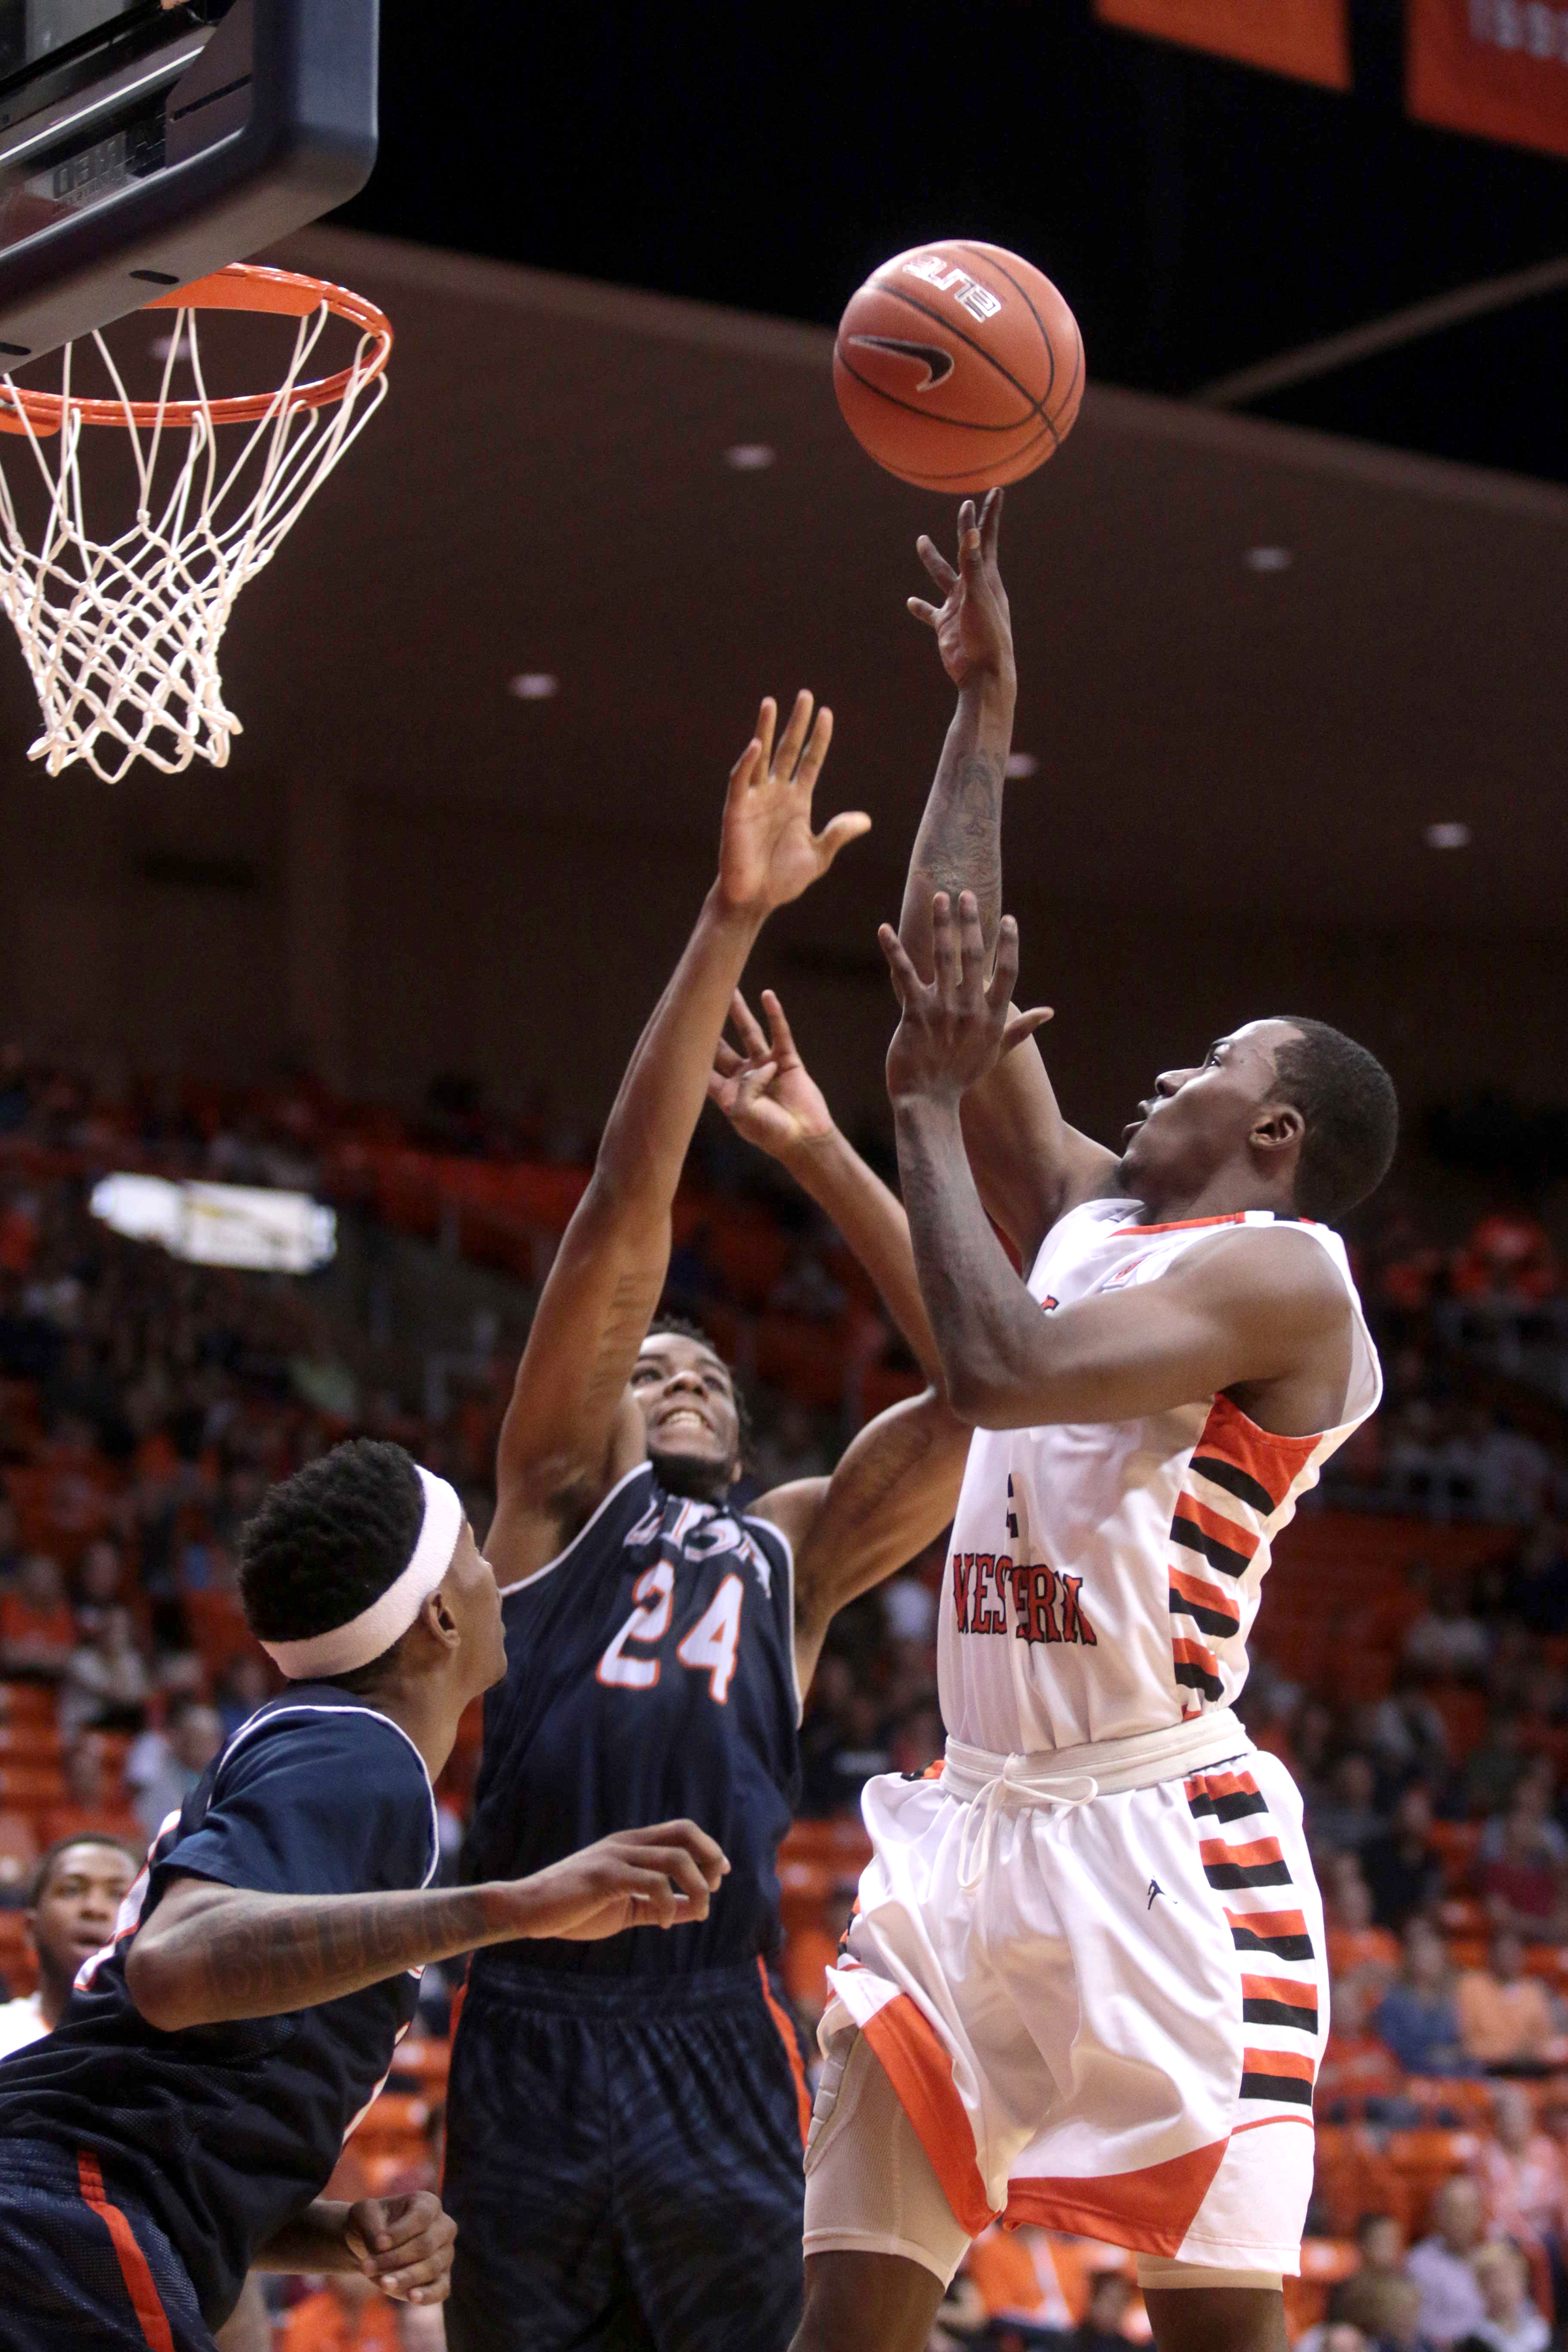 UTEP guard Lee Moore goes up past UTSA's defense at the Don Haskins Center in El Paso, Texas on March 5, 2016.